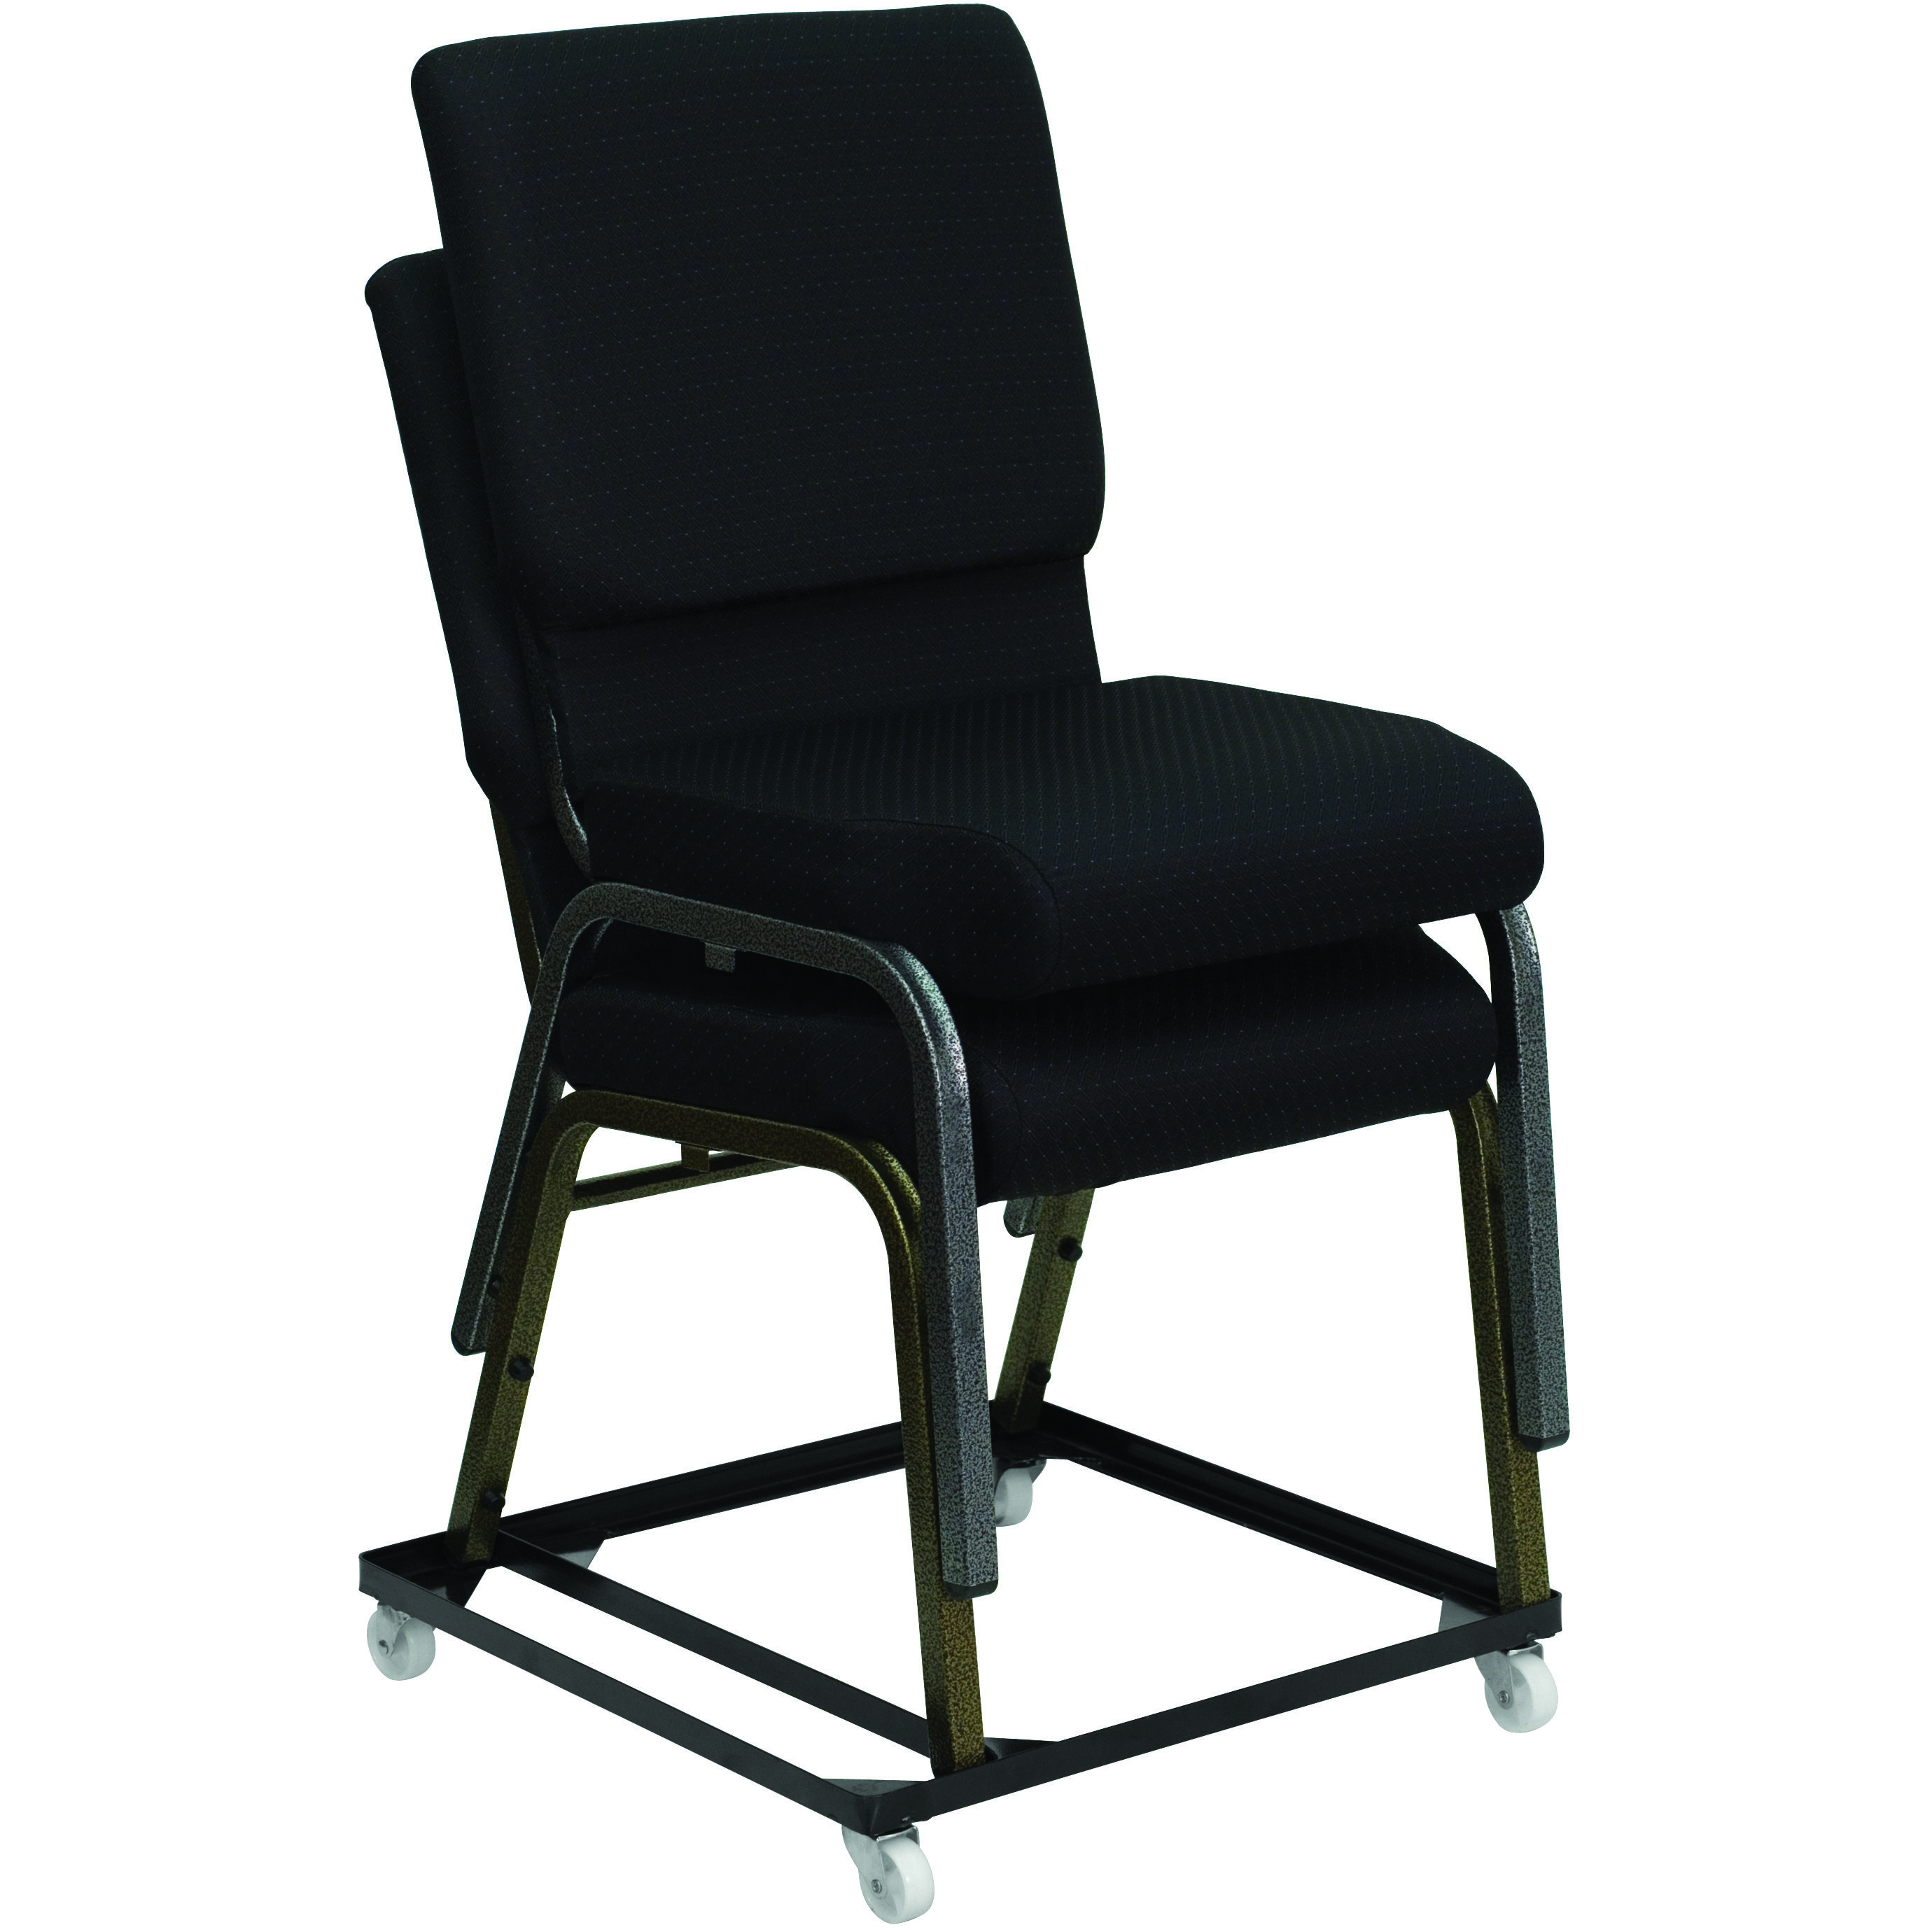 Attirant Our HERCULES Series Steel Stack Chair And Church Chair Dolly Is On Sale Now.